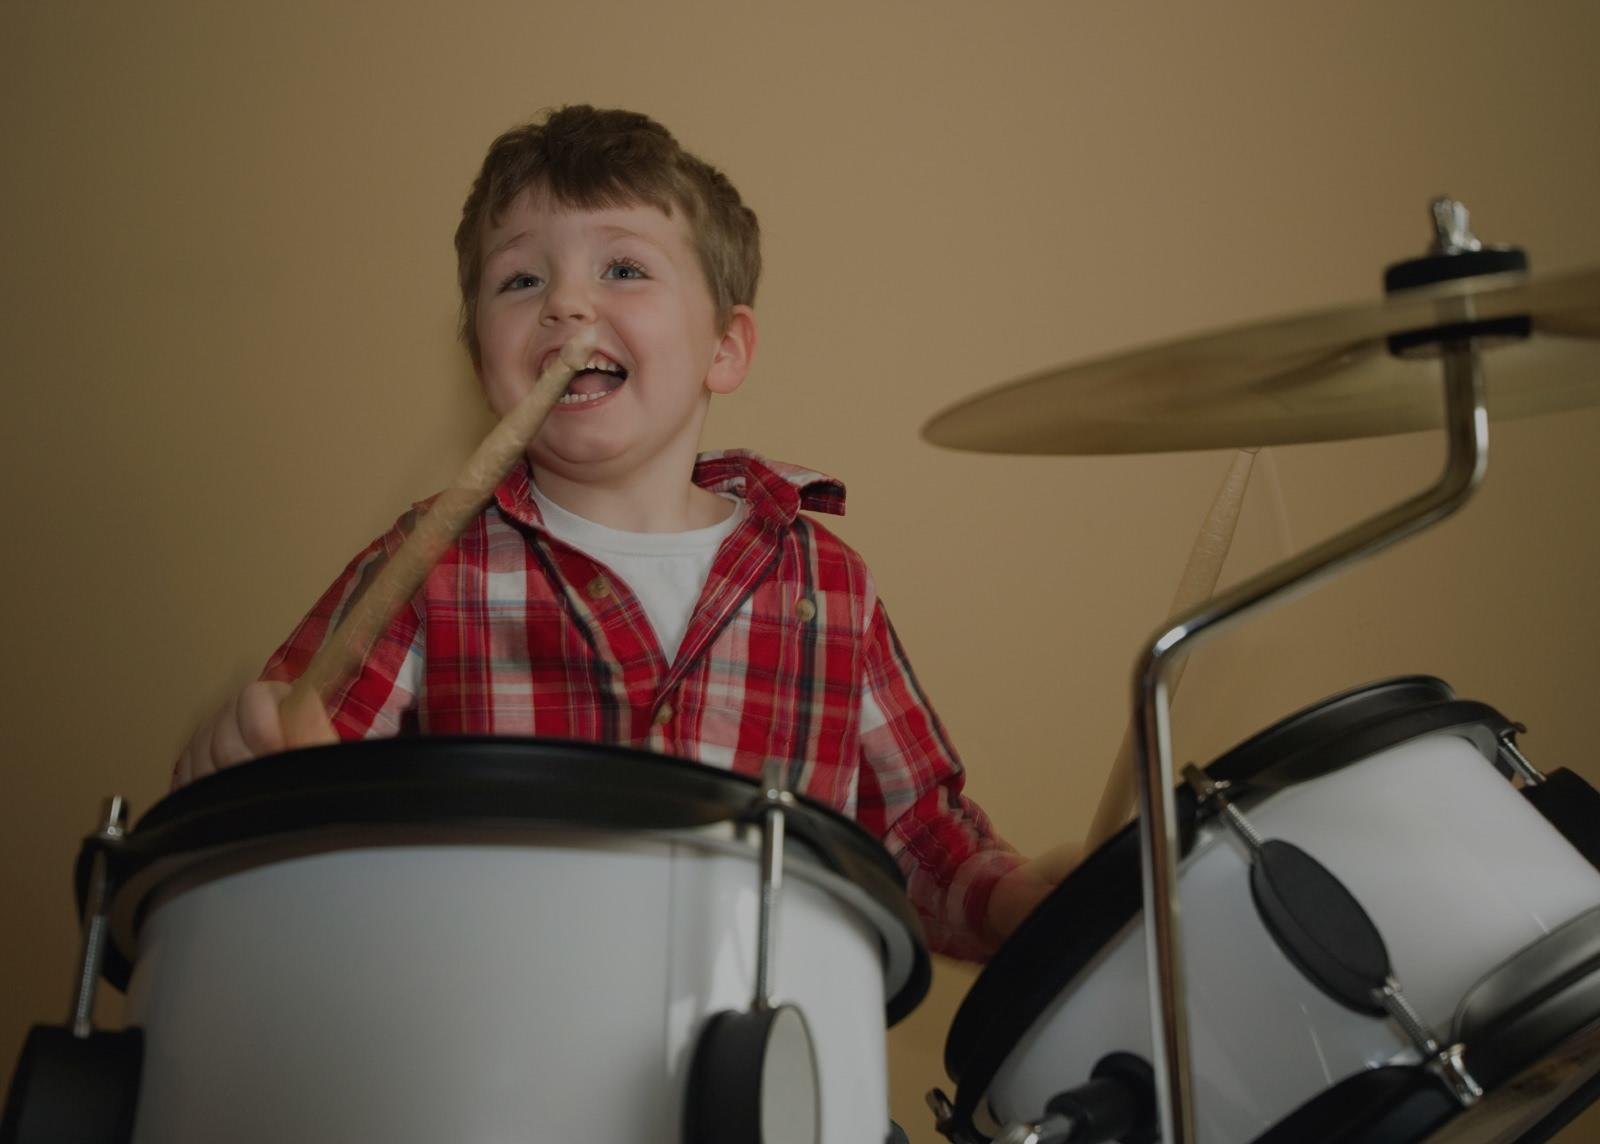 Picture of drum lessons in Hastings on Hudson, NY